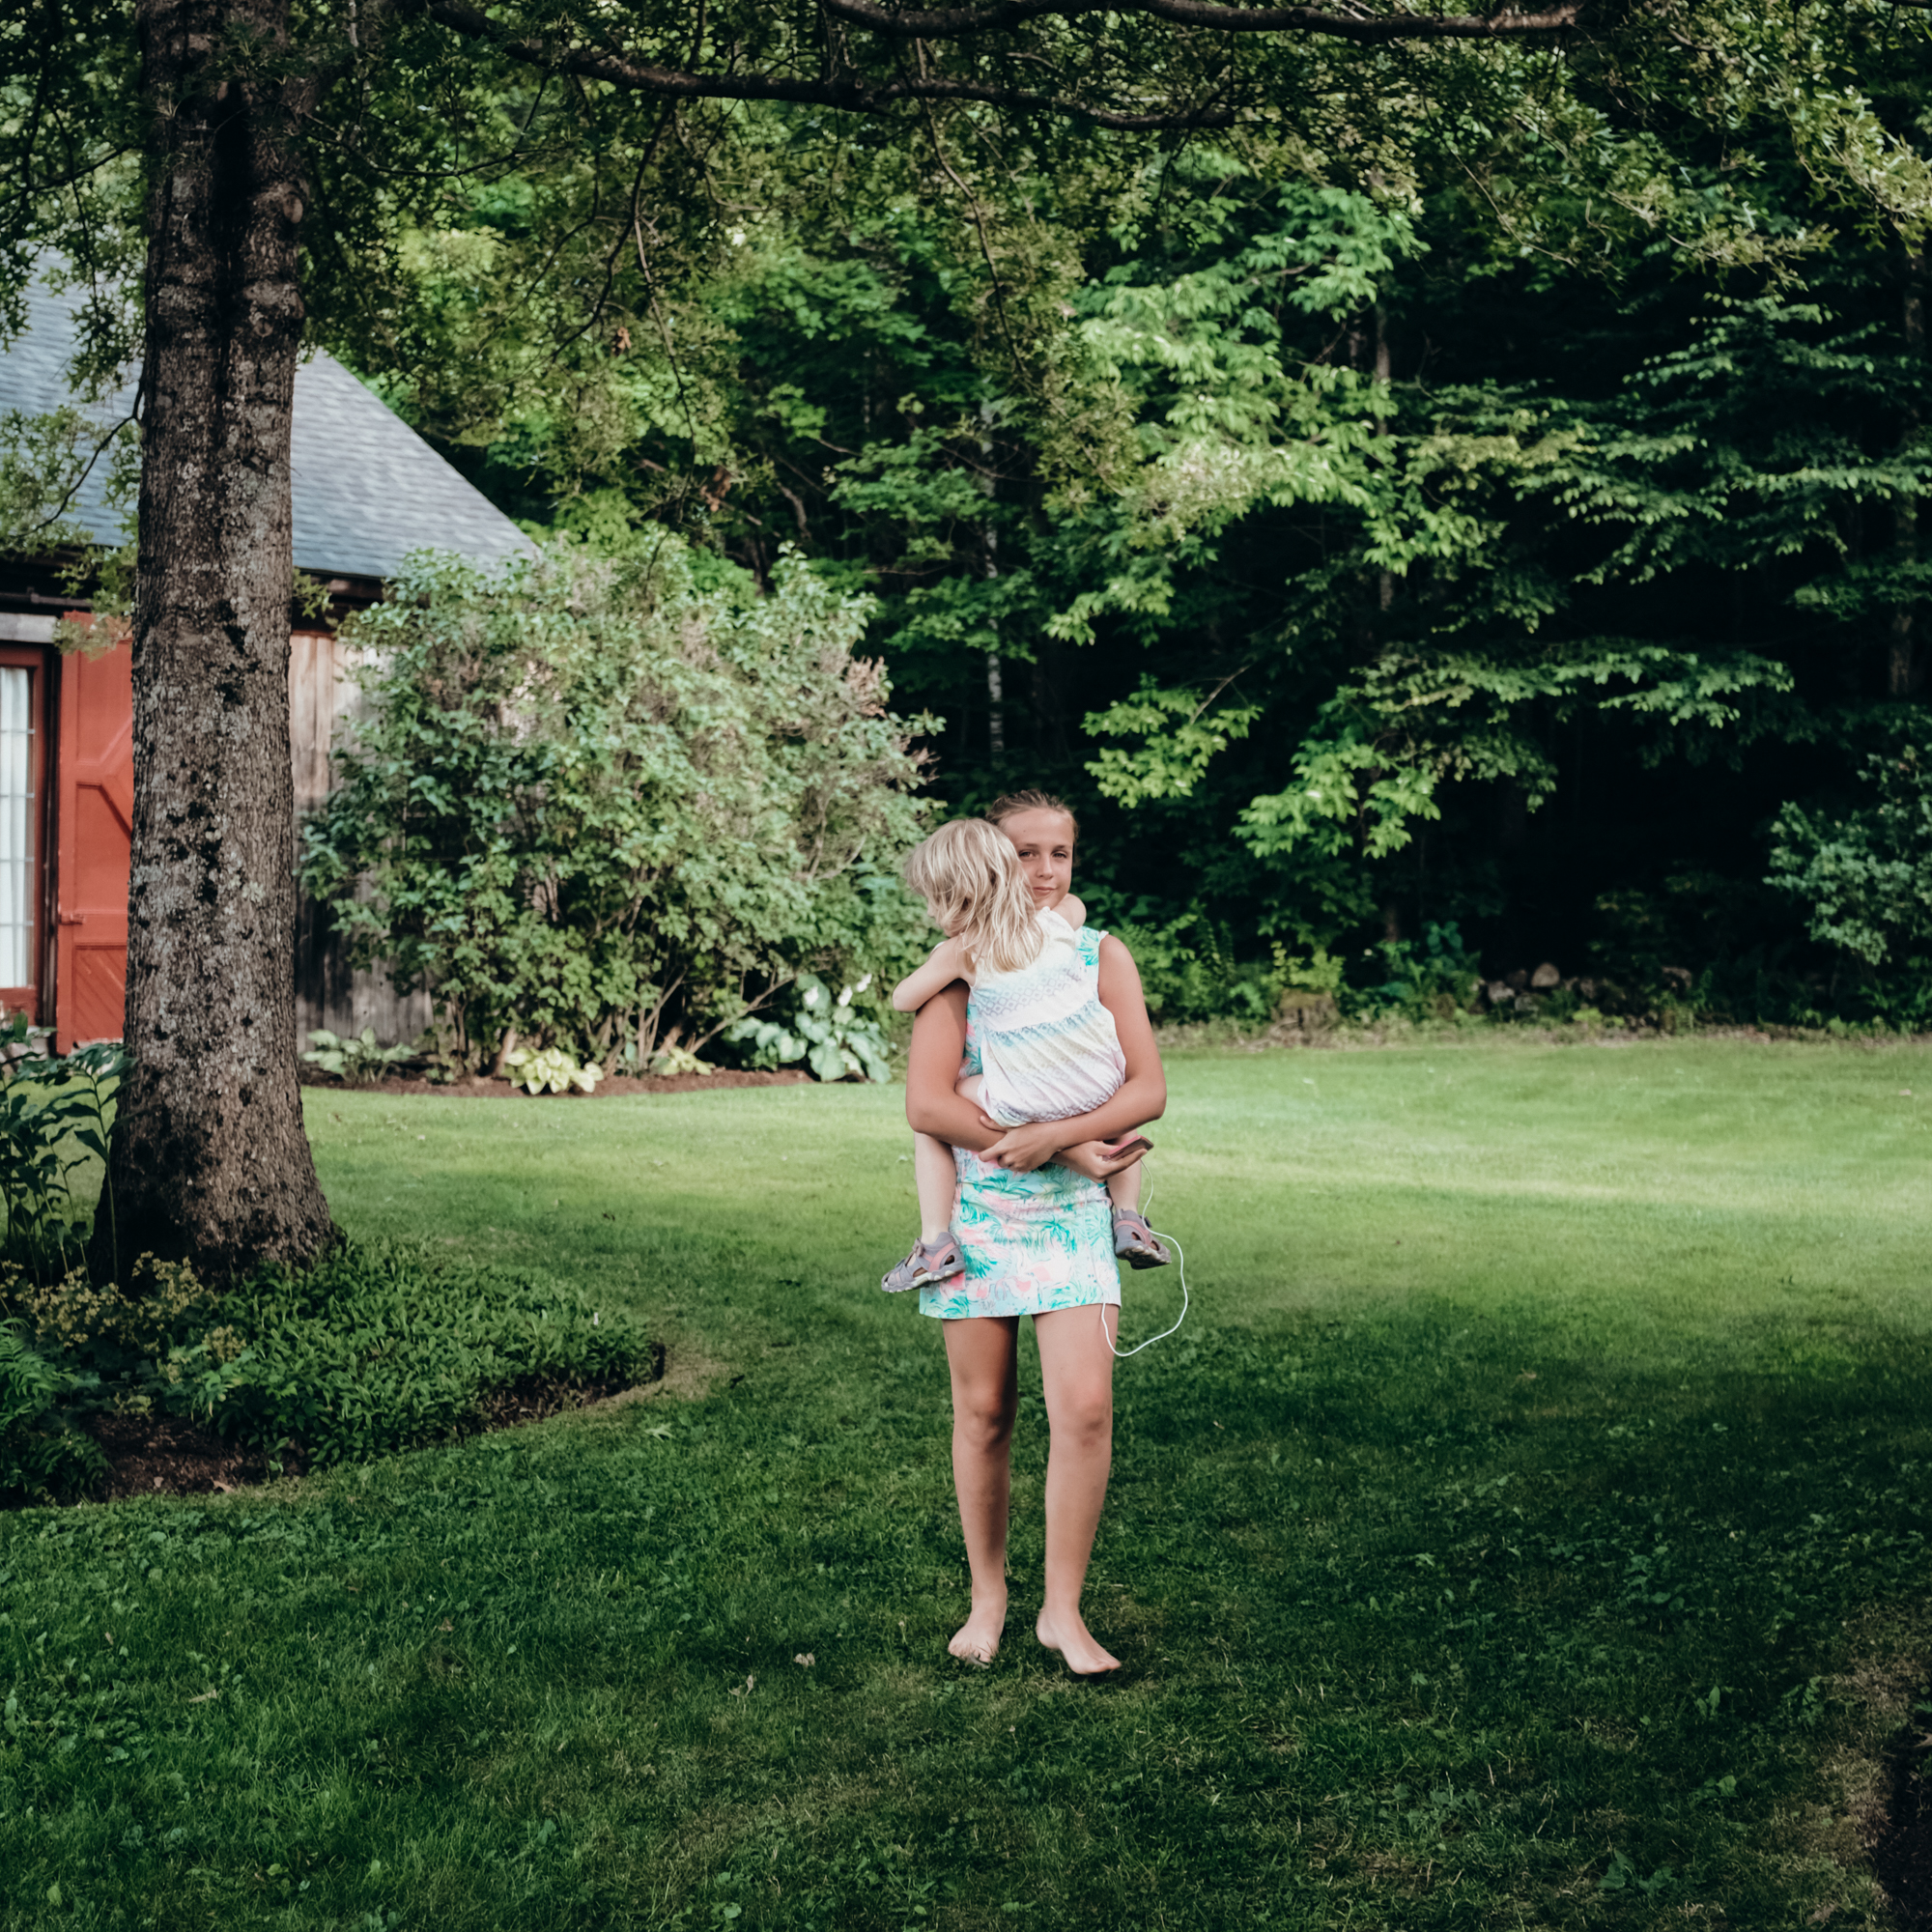 A girl carries a younger girl across a lawn in summer in New Hampshire.